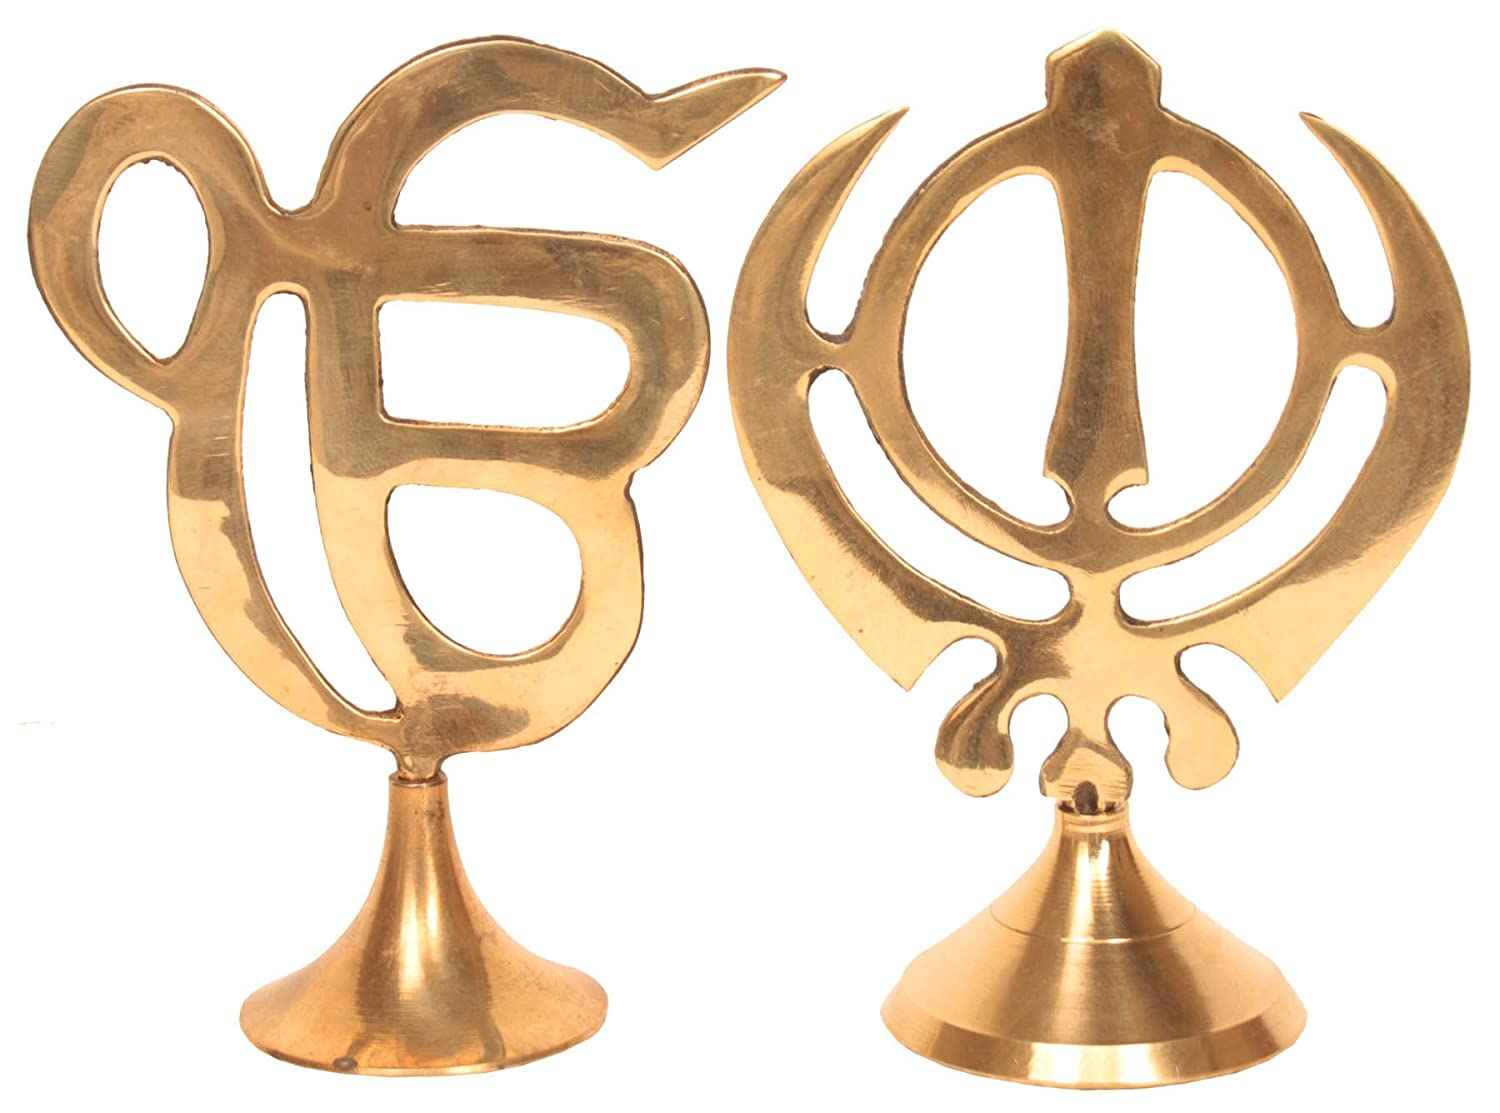 Hashcart Sikh Religious Symbol IK ONKAR & Khanda Showpiece for Home Decor, Office, Car - (5.5 Inch) HC-BR-ONKAR+KHANDA85